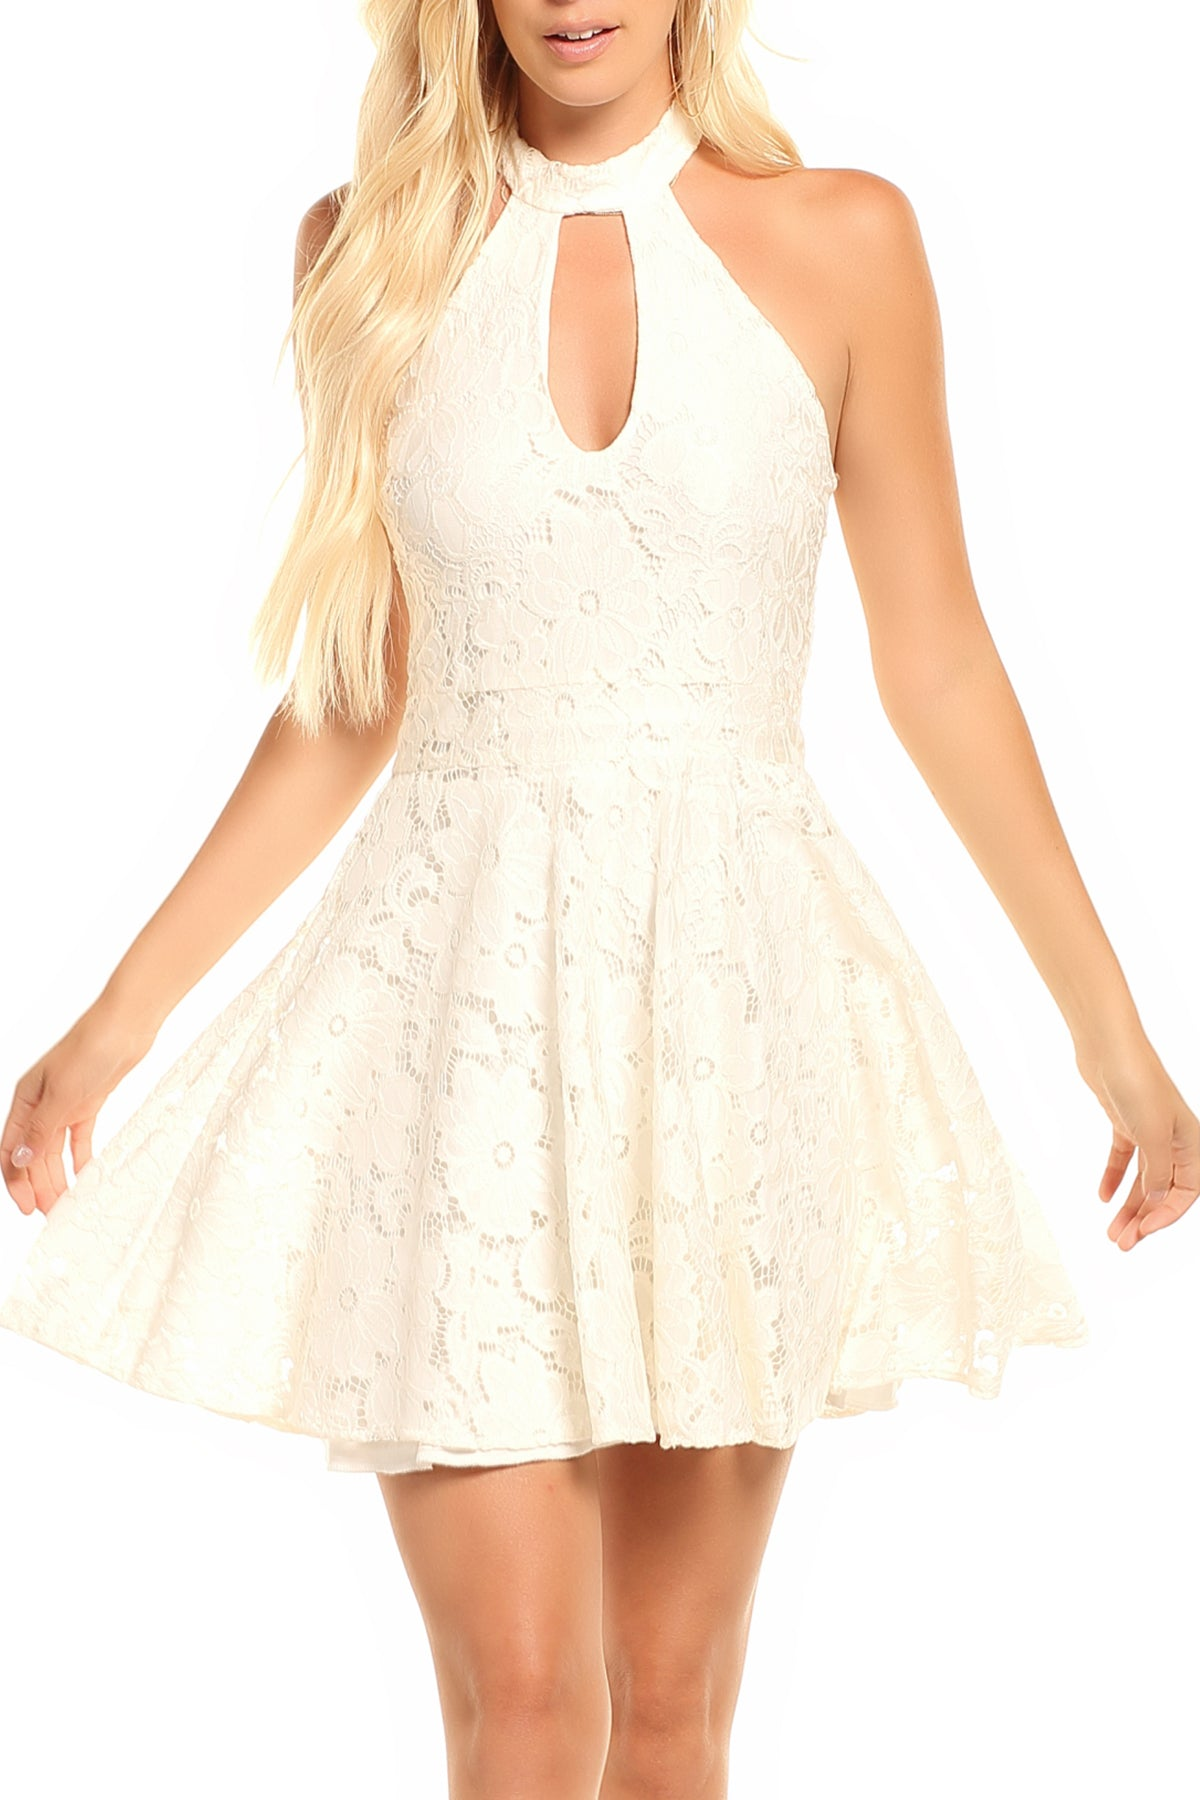 DREAMLAND DRESS